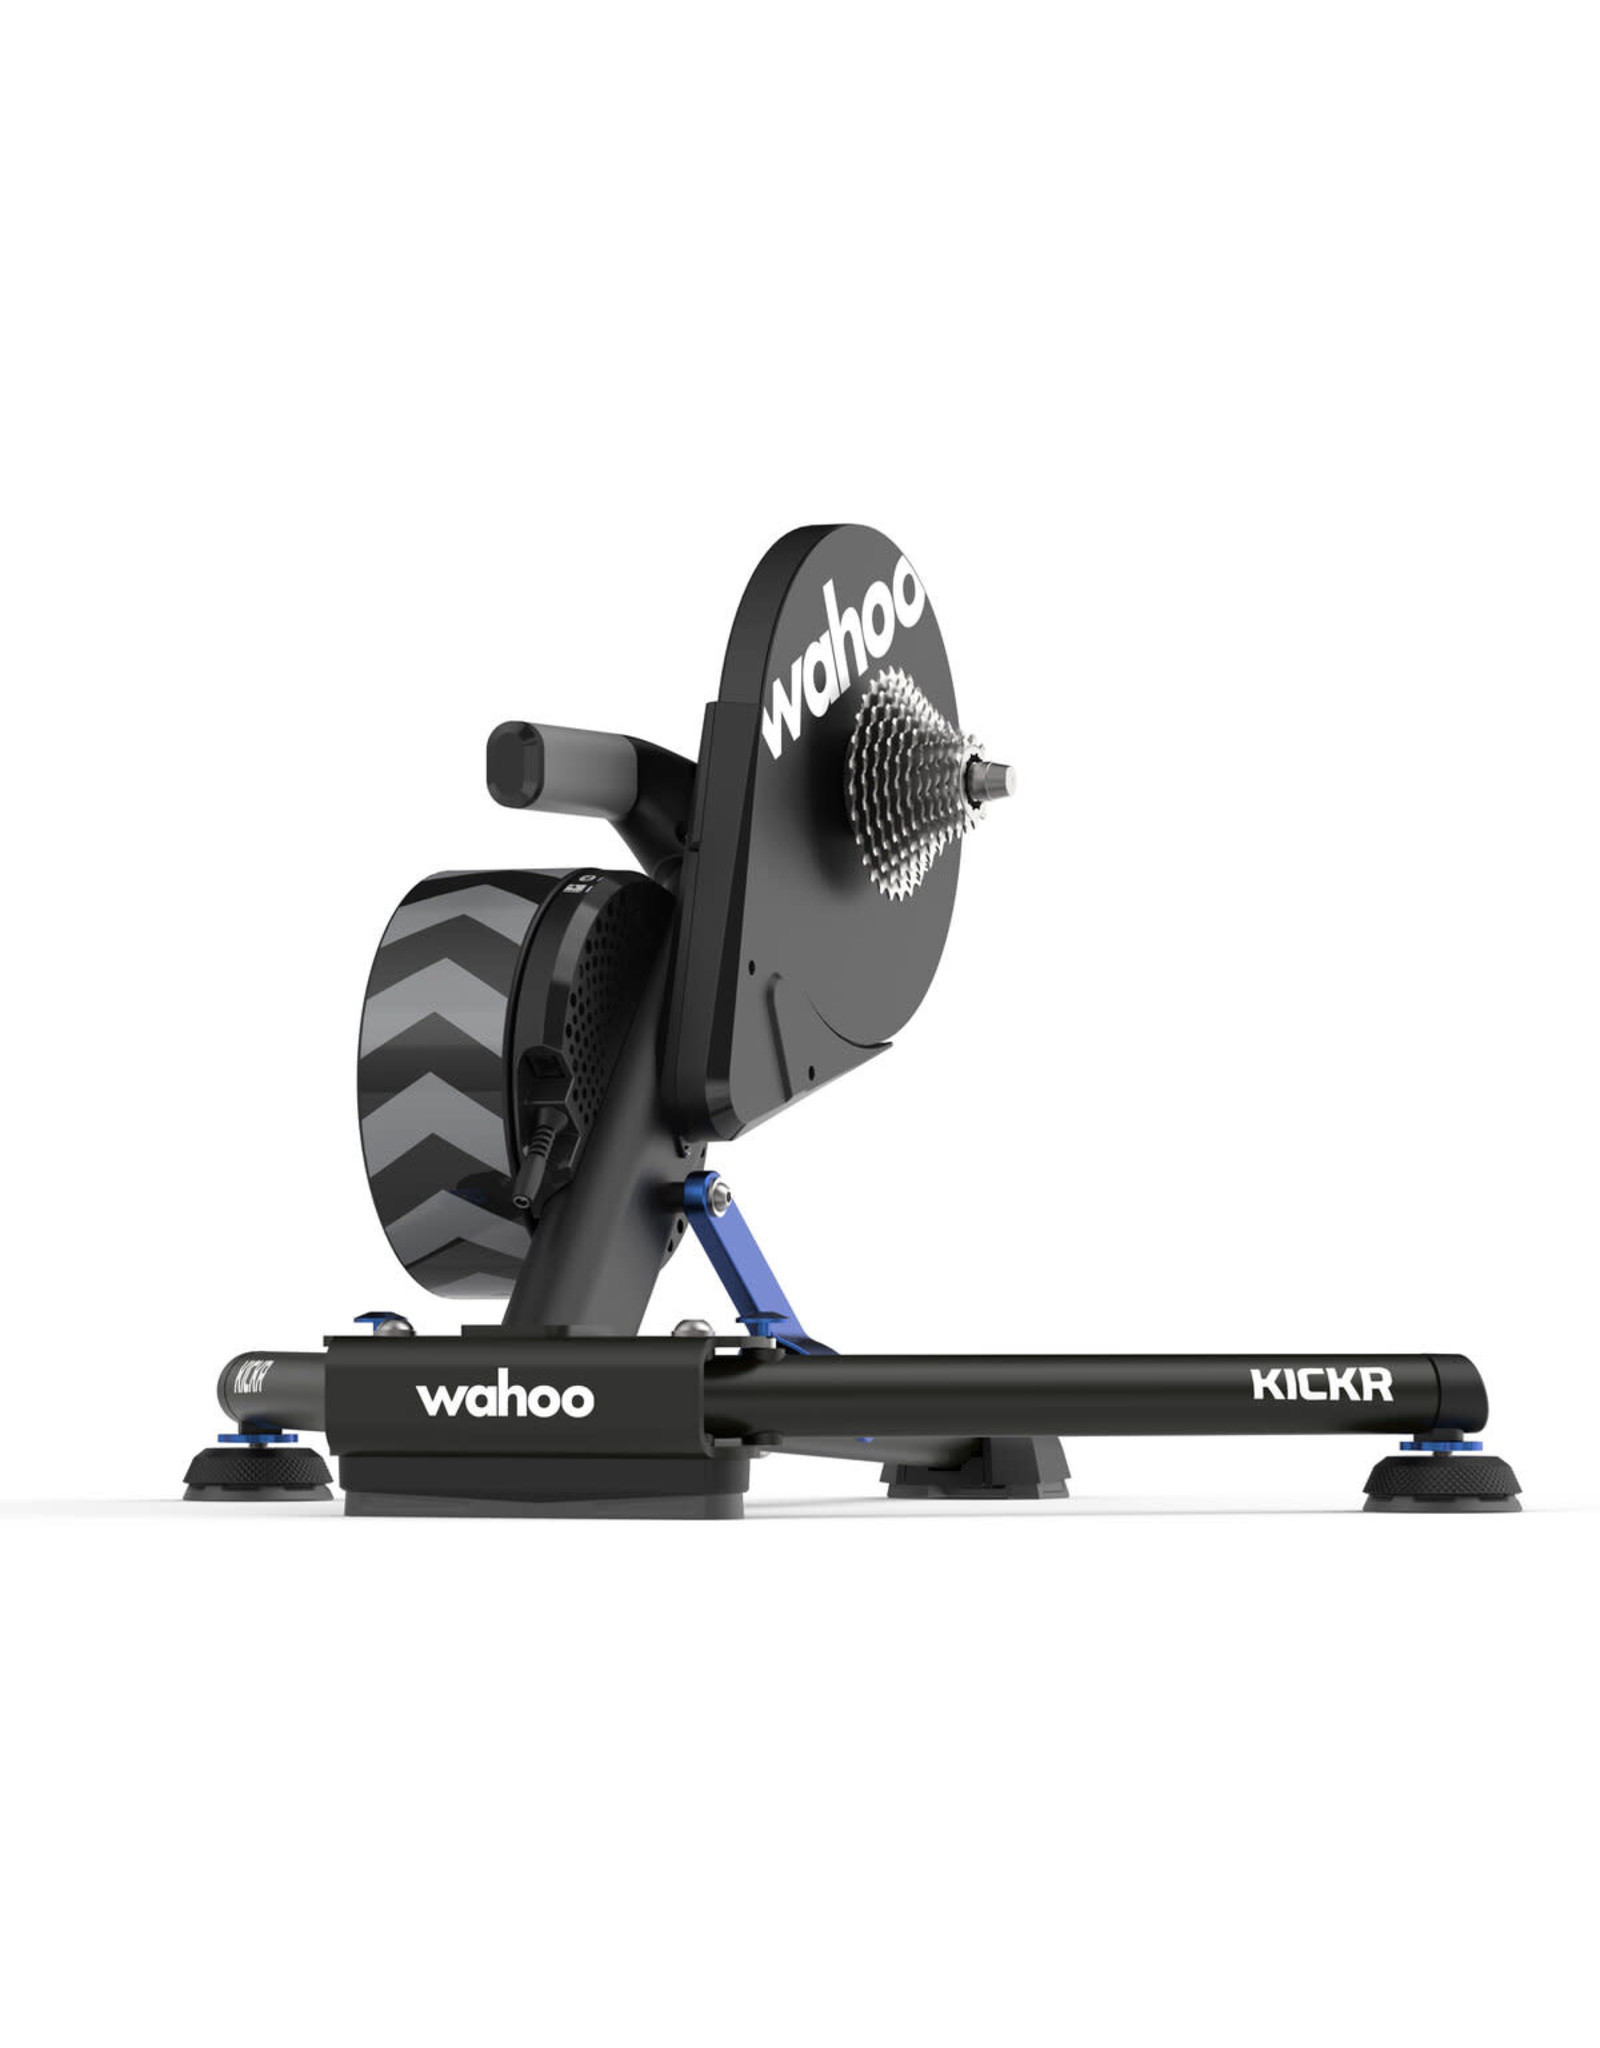 Wahoo Fitness Wahoo Kickr + Axis Action Feet